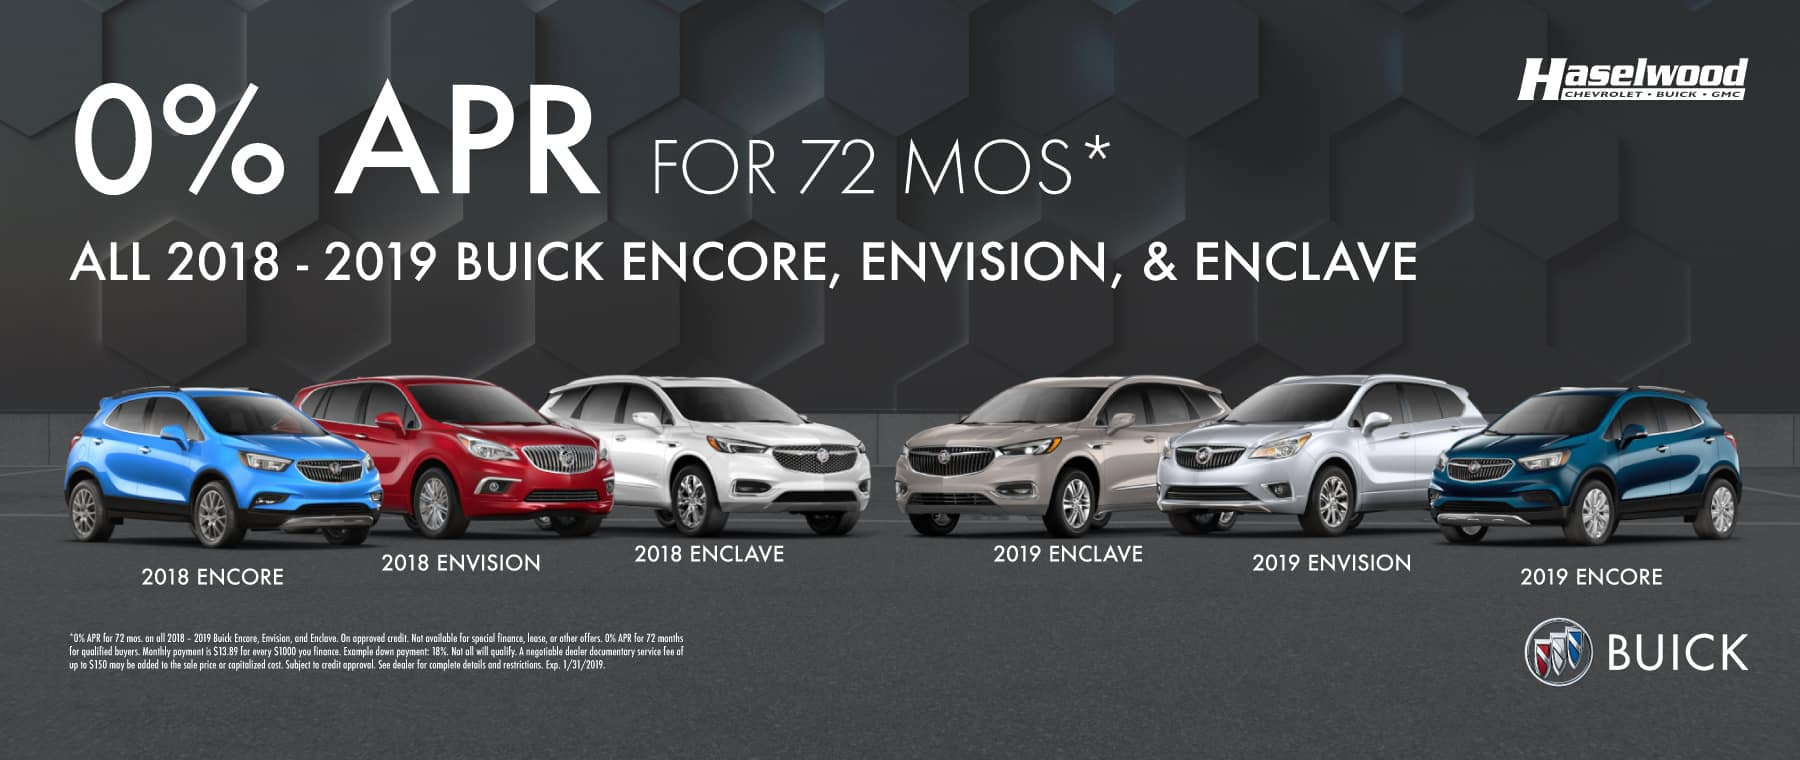 All 2018 – 2019 Buick Encore, Envision, and Enclave  0% APR for 72 mos.*   *0% APR for 72 mos. on all 2018 – 2019 Buick Encore, Envision, and Enclave. On approved credit. Not available for special finance, lease, or other offers. 0% APR for 72 months for qualified buyers. Monthly payment is $13.89 for every $1000 you finance. Example down payment: 18%. Not all will qualify. A negotiable dealer documentary service fee of up to $150 may be added to the sale price or capitalized cost. Subject to credit approval. See dealer for complete details and restrictions. Exp. 1/31/2019.